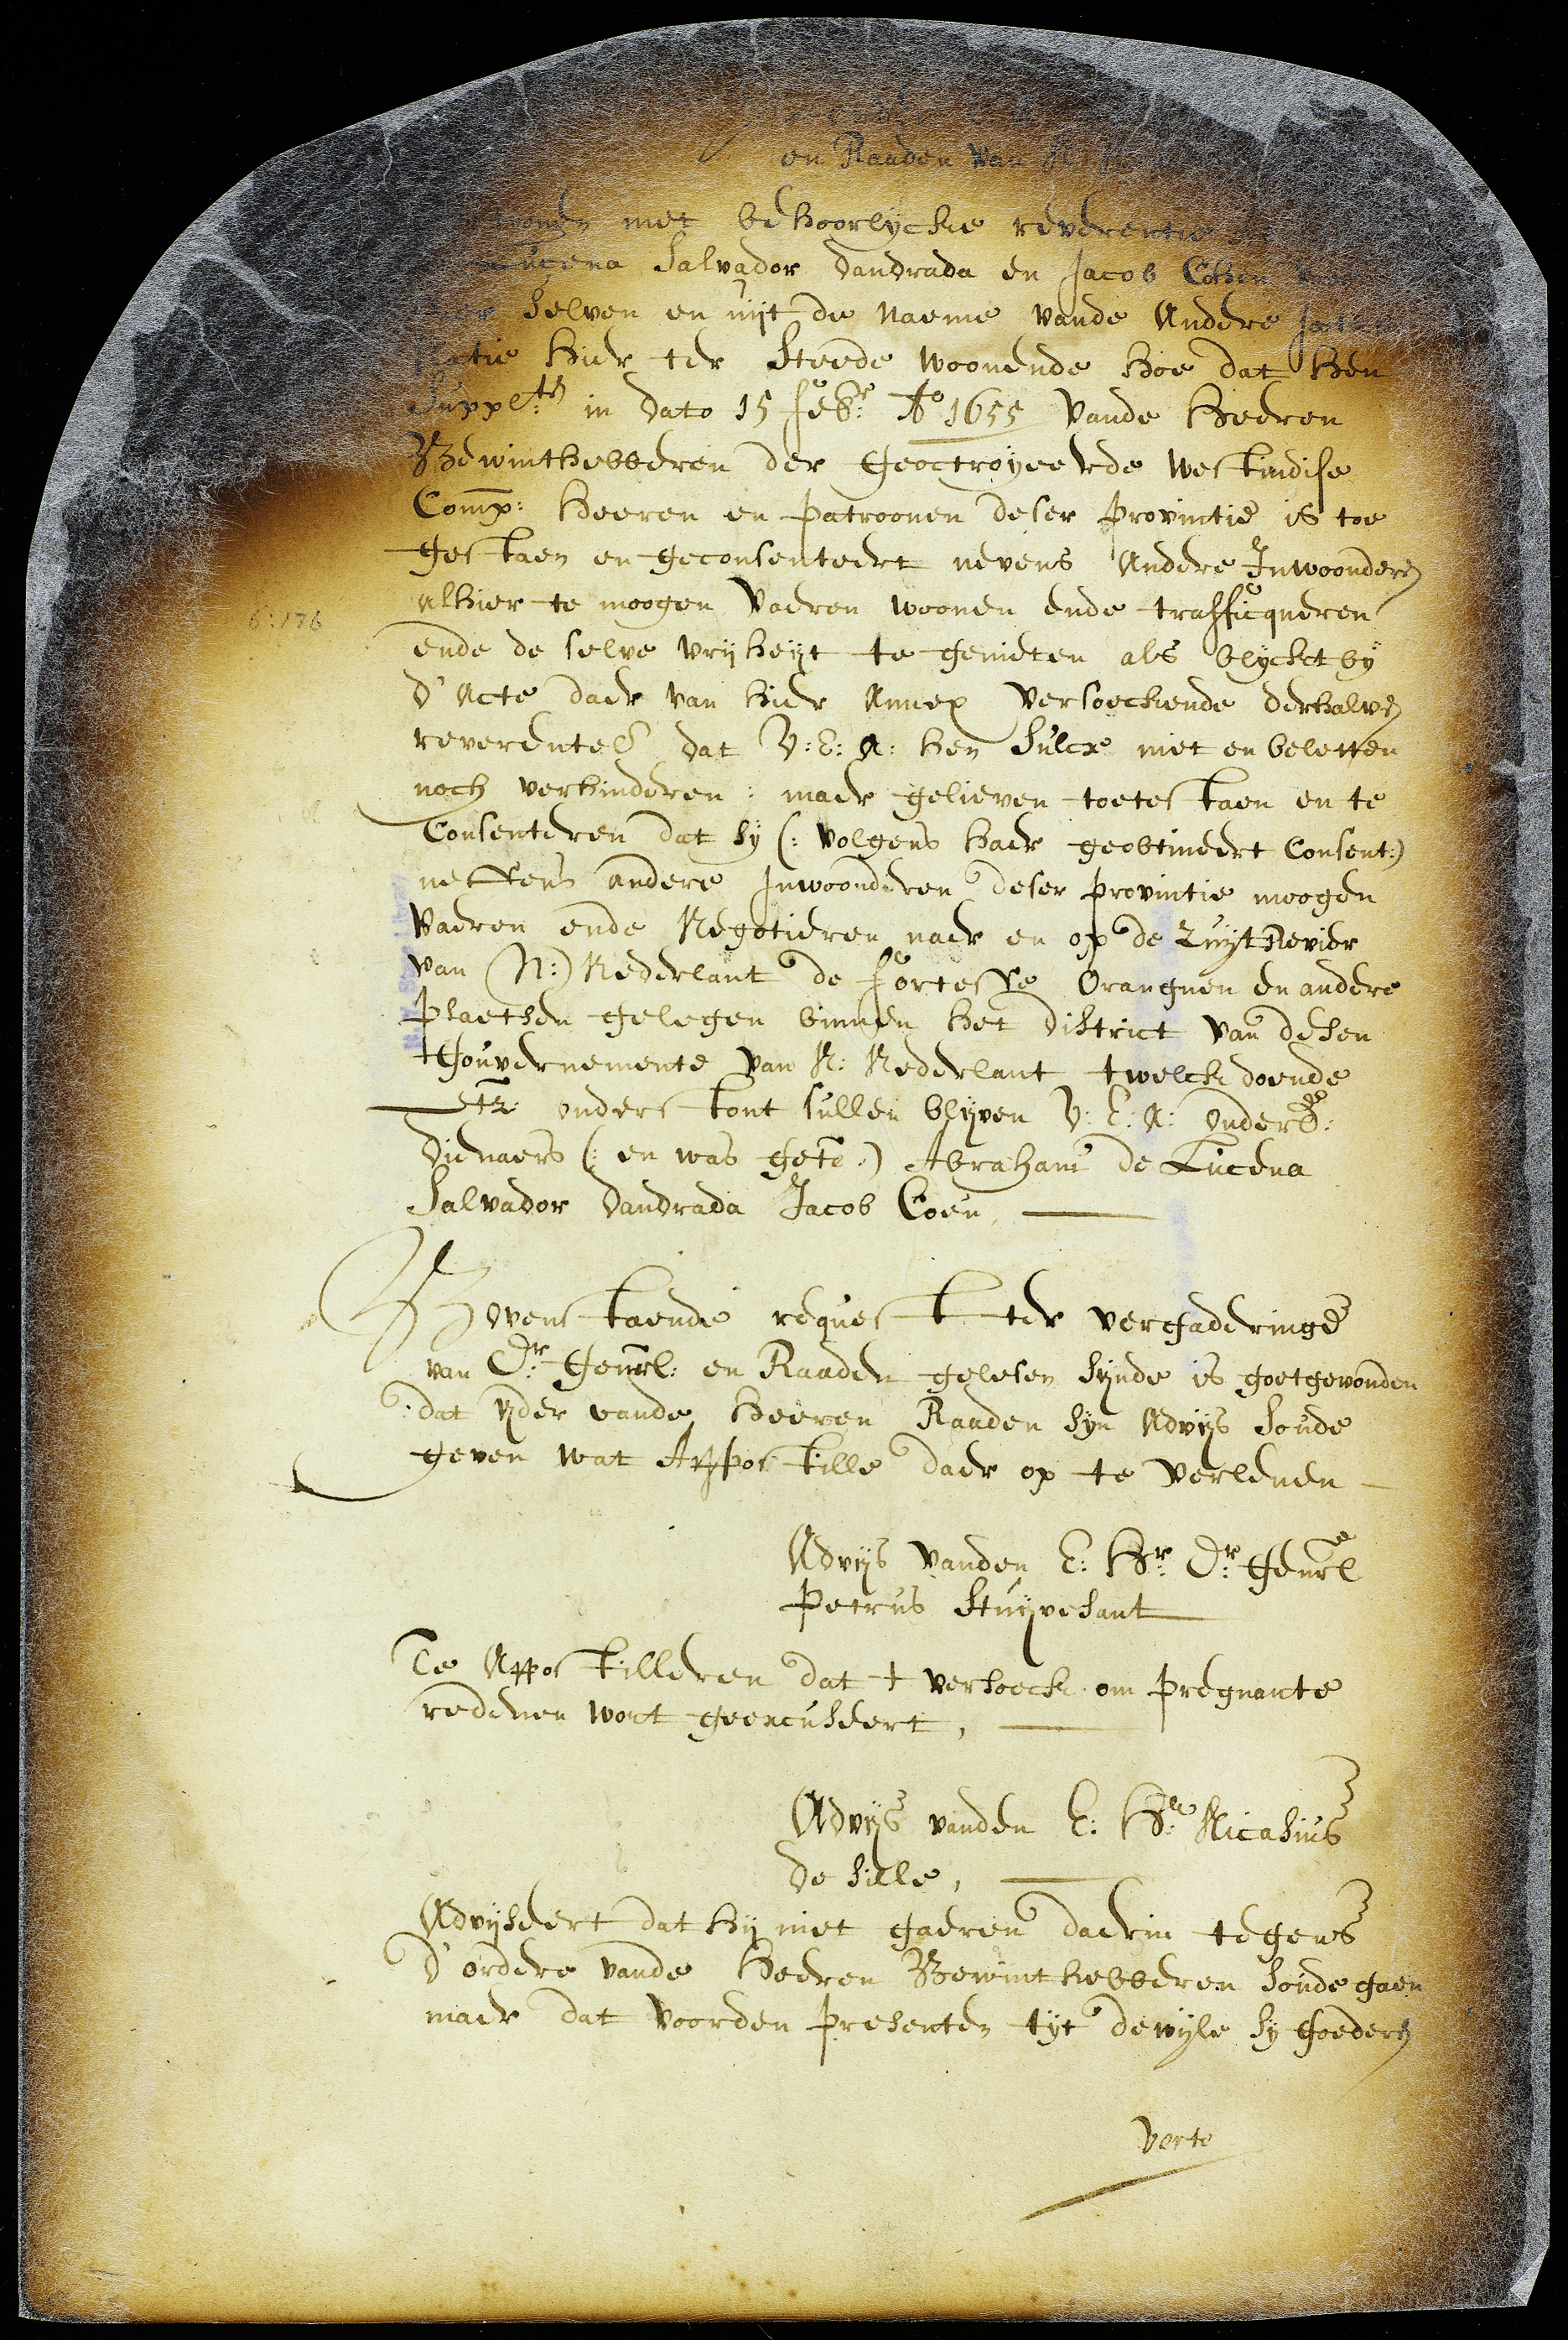 Petition of Abraham de Lucena